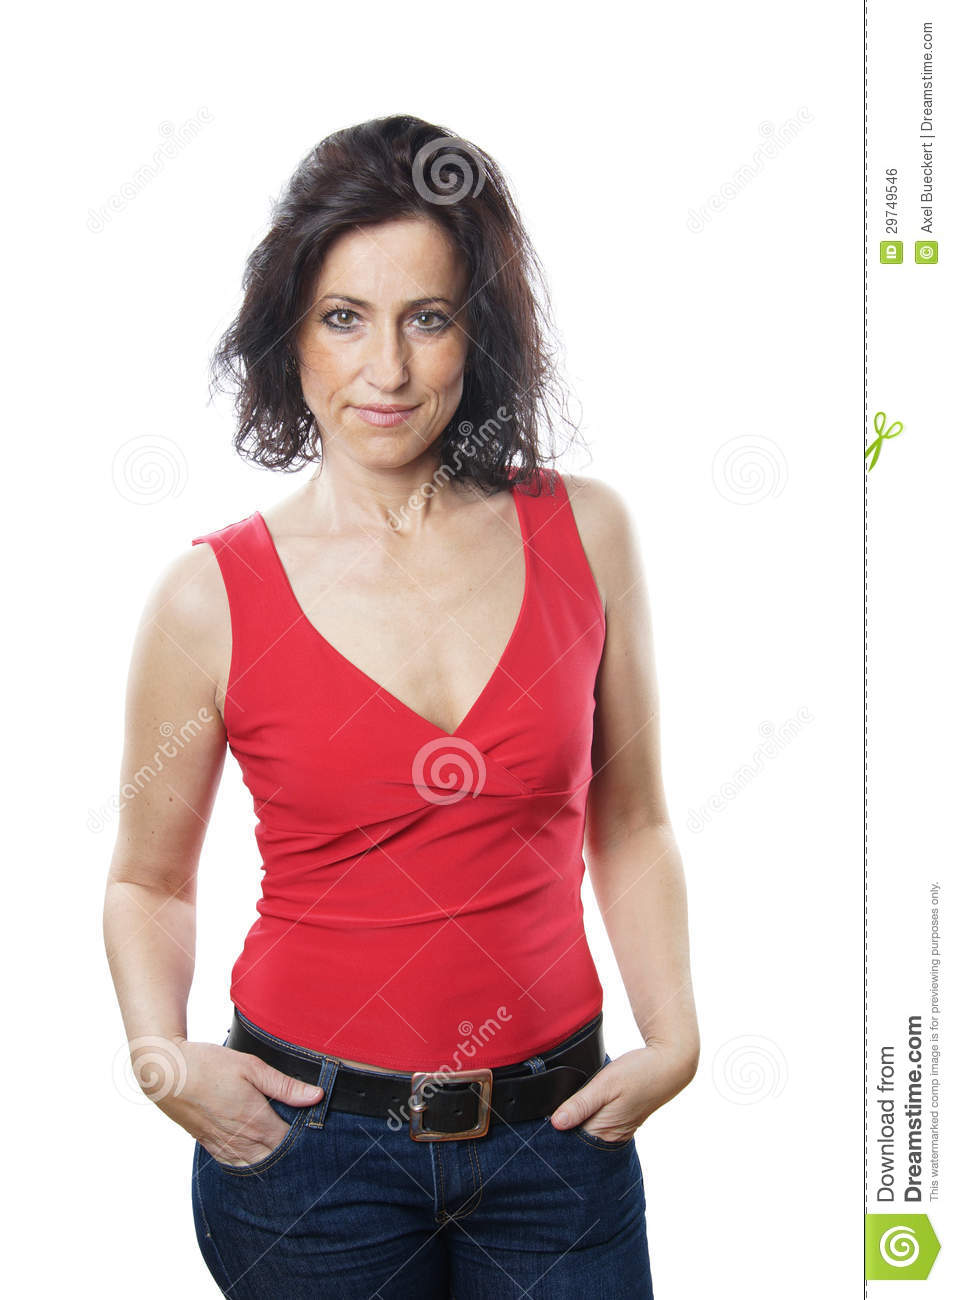 Woman in her forties